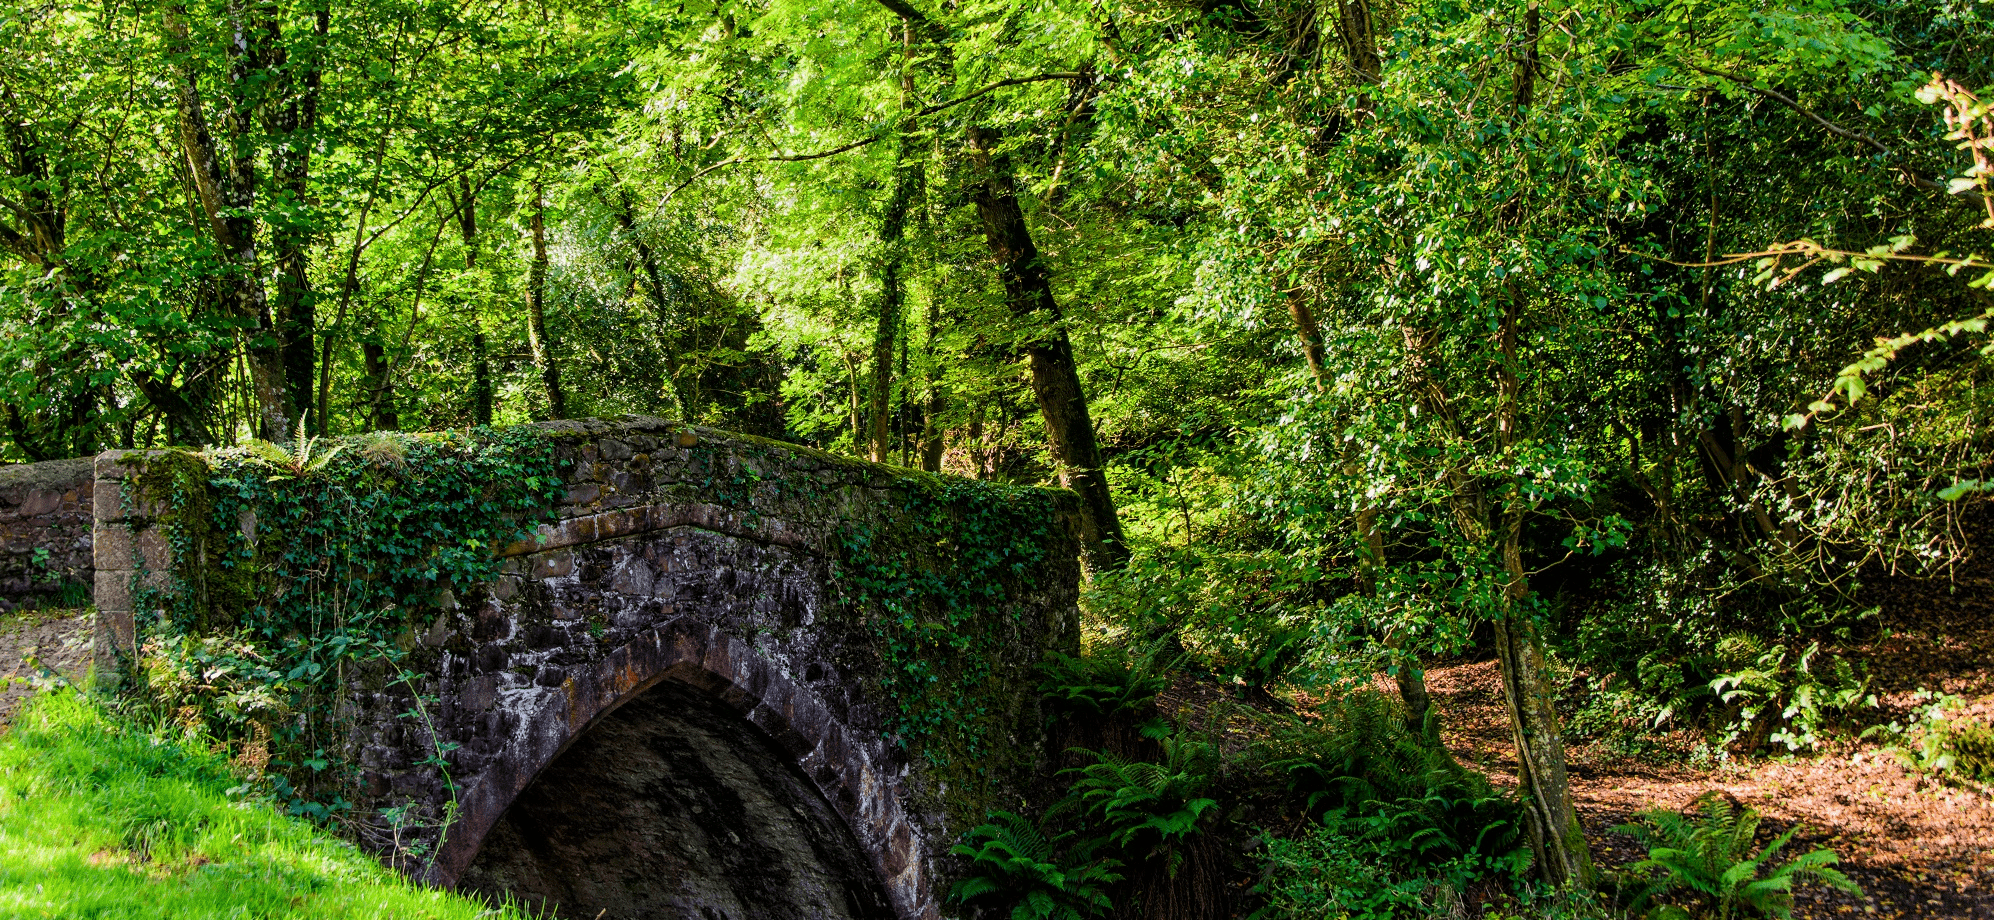 Image of Bridge near woods Nether Stowey